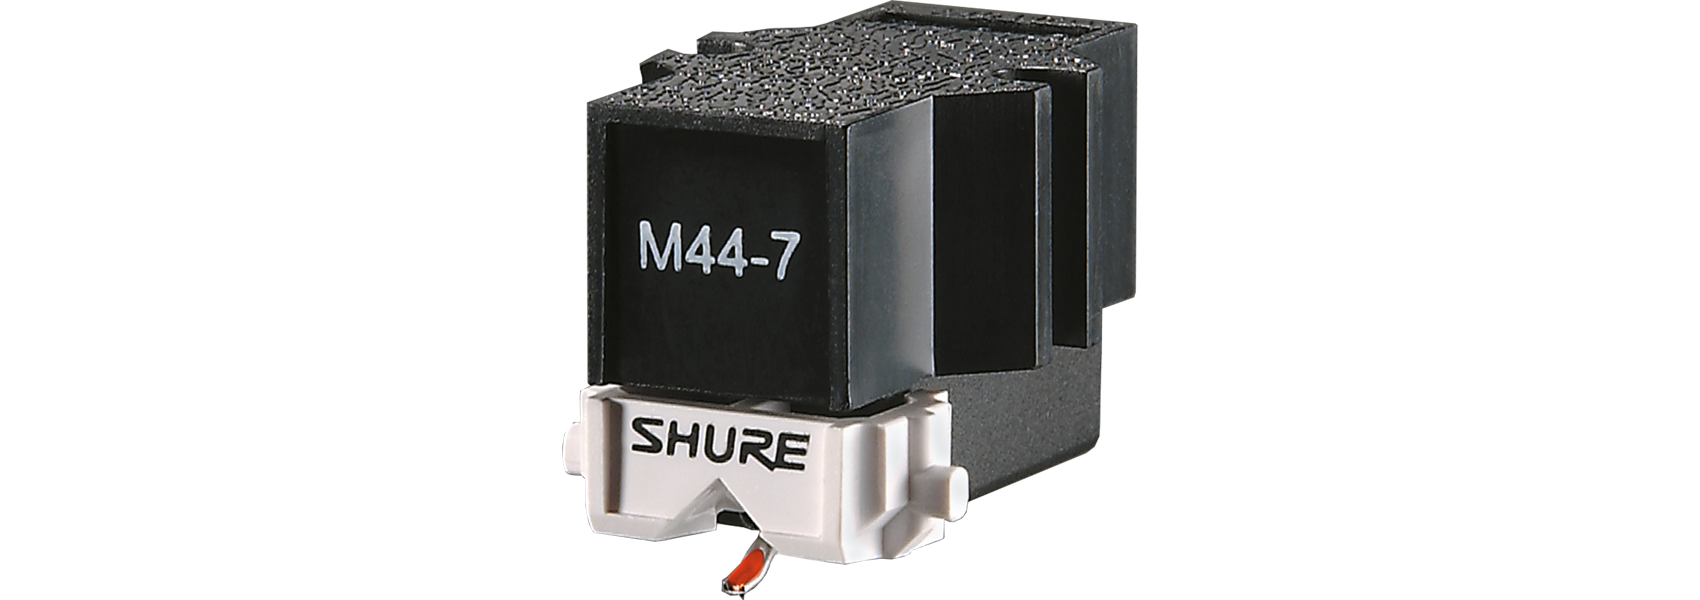 Illustratie Shure M44-7 draaitafel element